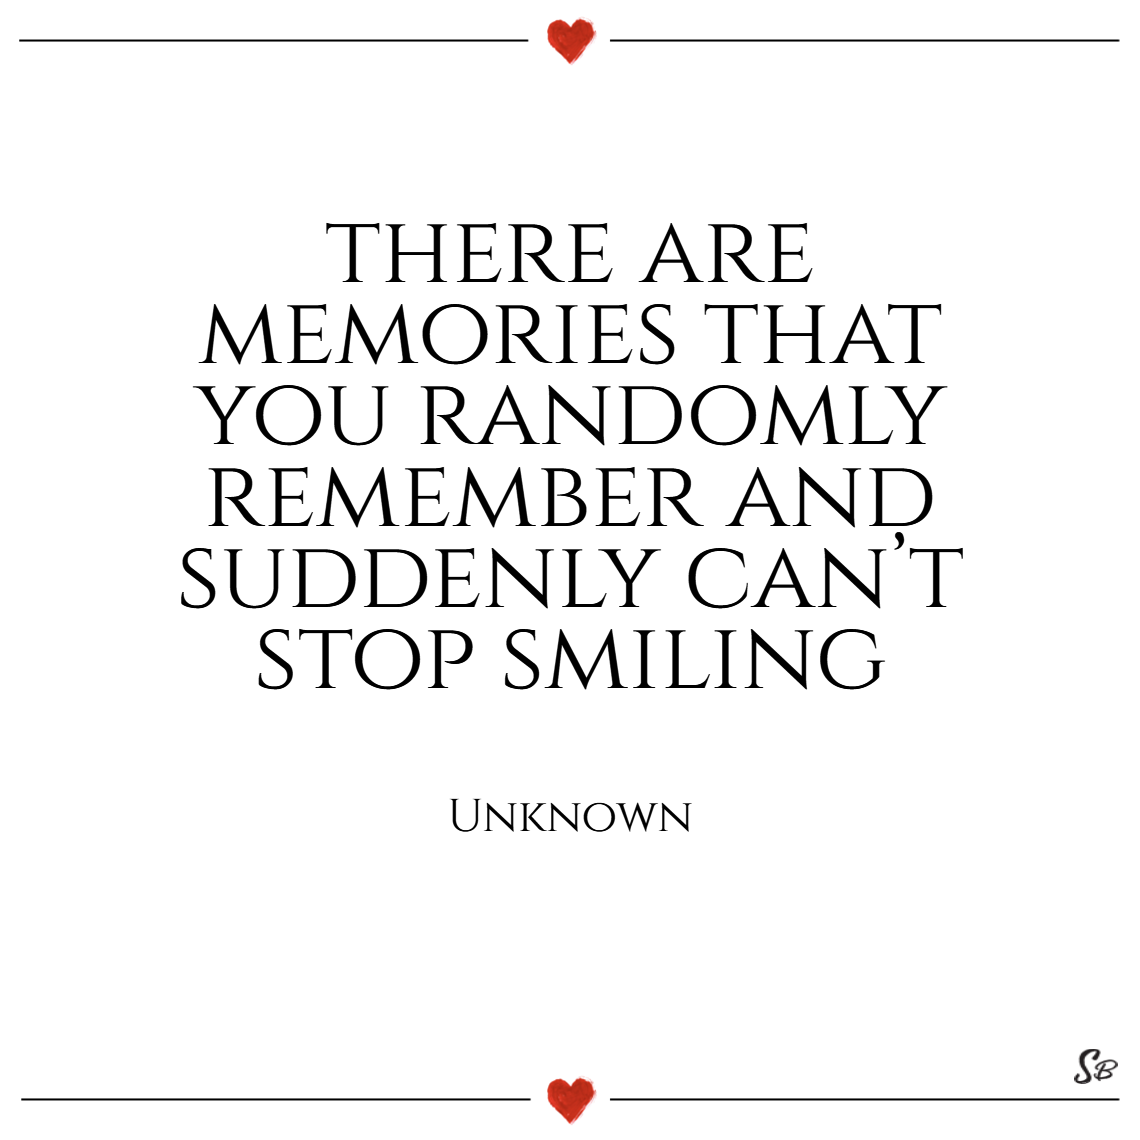 There are memories that you randomly remember and suddenly can't stop smiling. – unknown